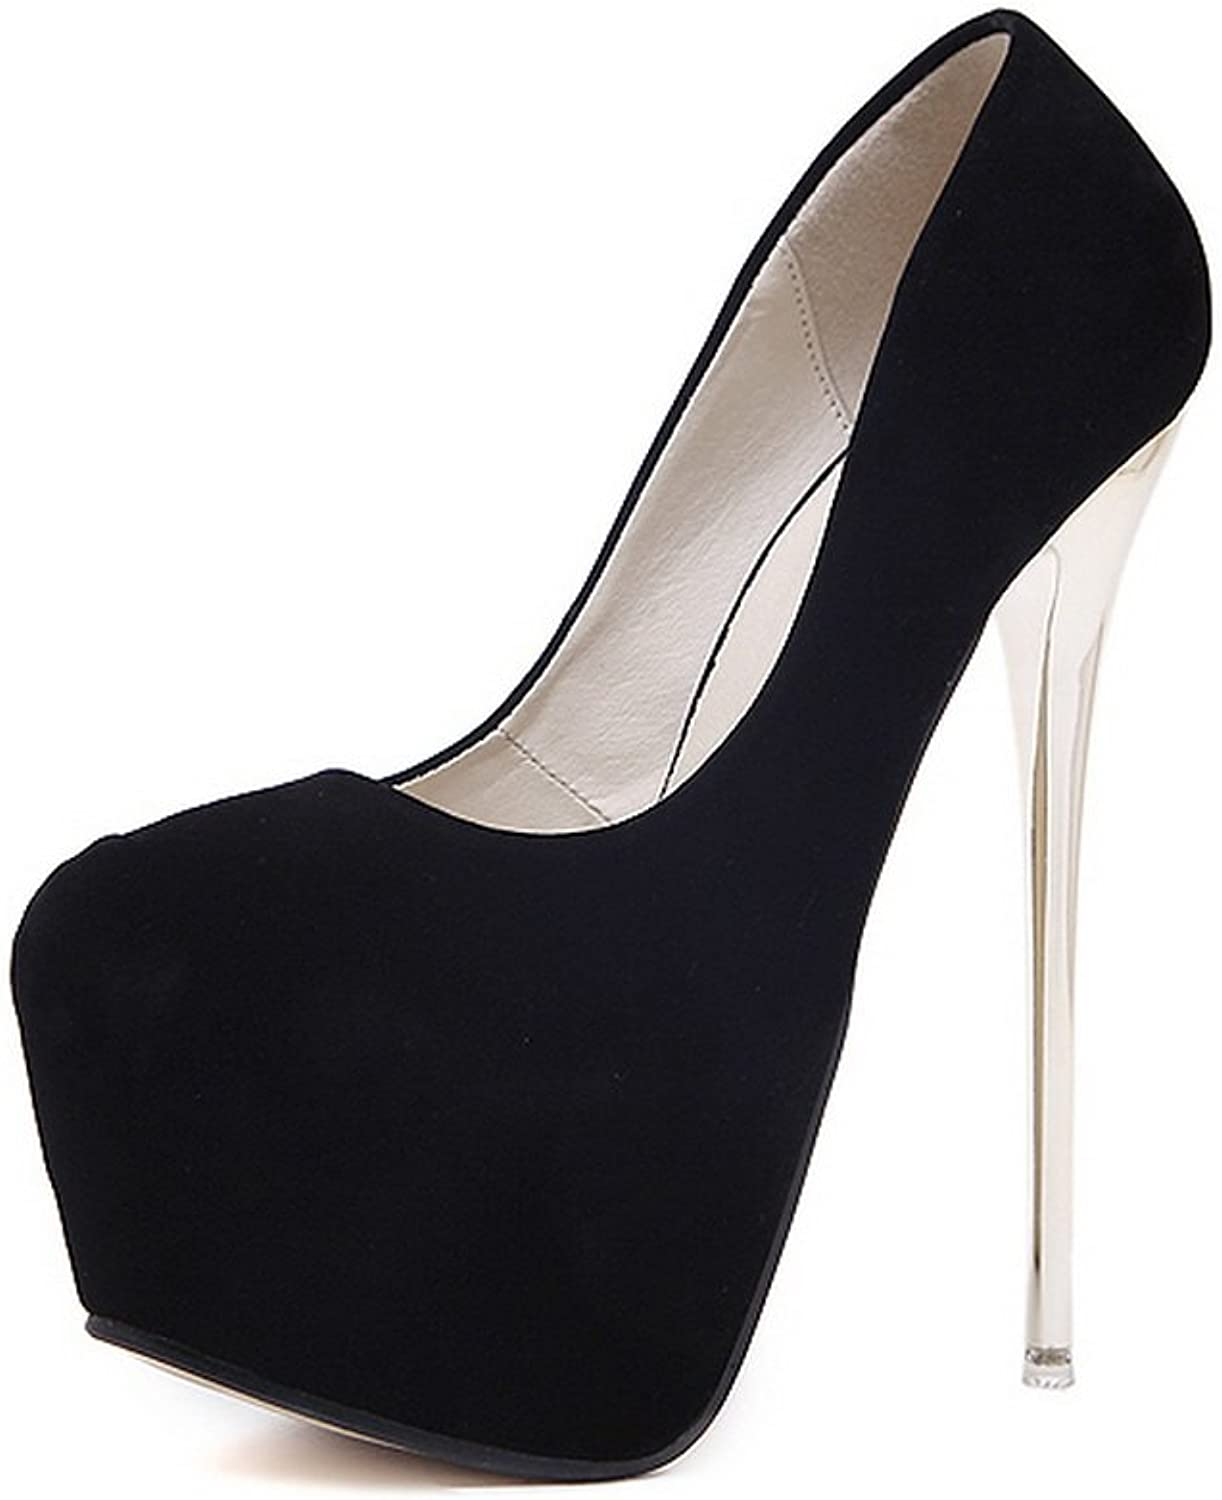 1TO9 Womens Spikes Stilettos Low-Cut Uppers Round-Toe Black Suede Pumps shoes - 7 B(M) US